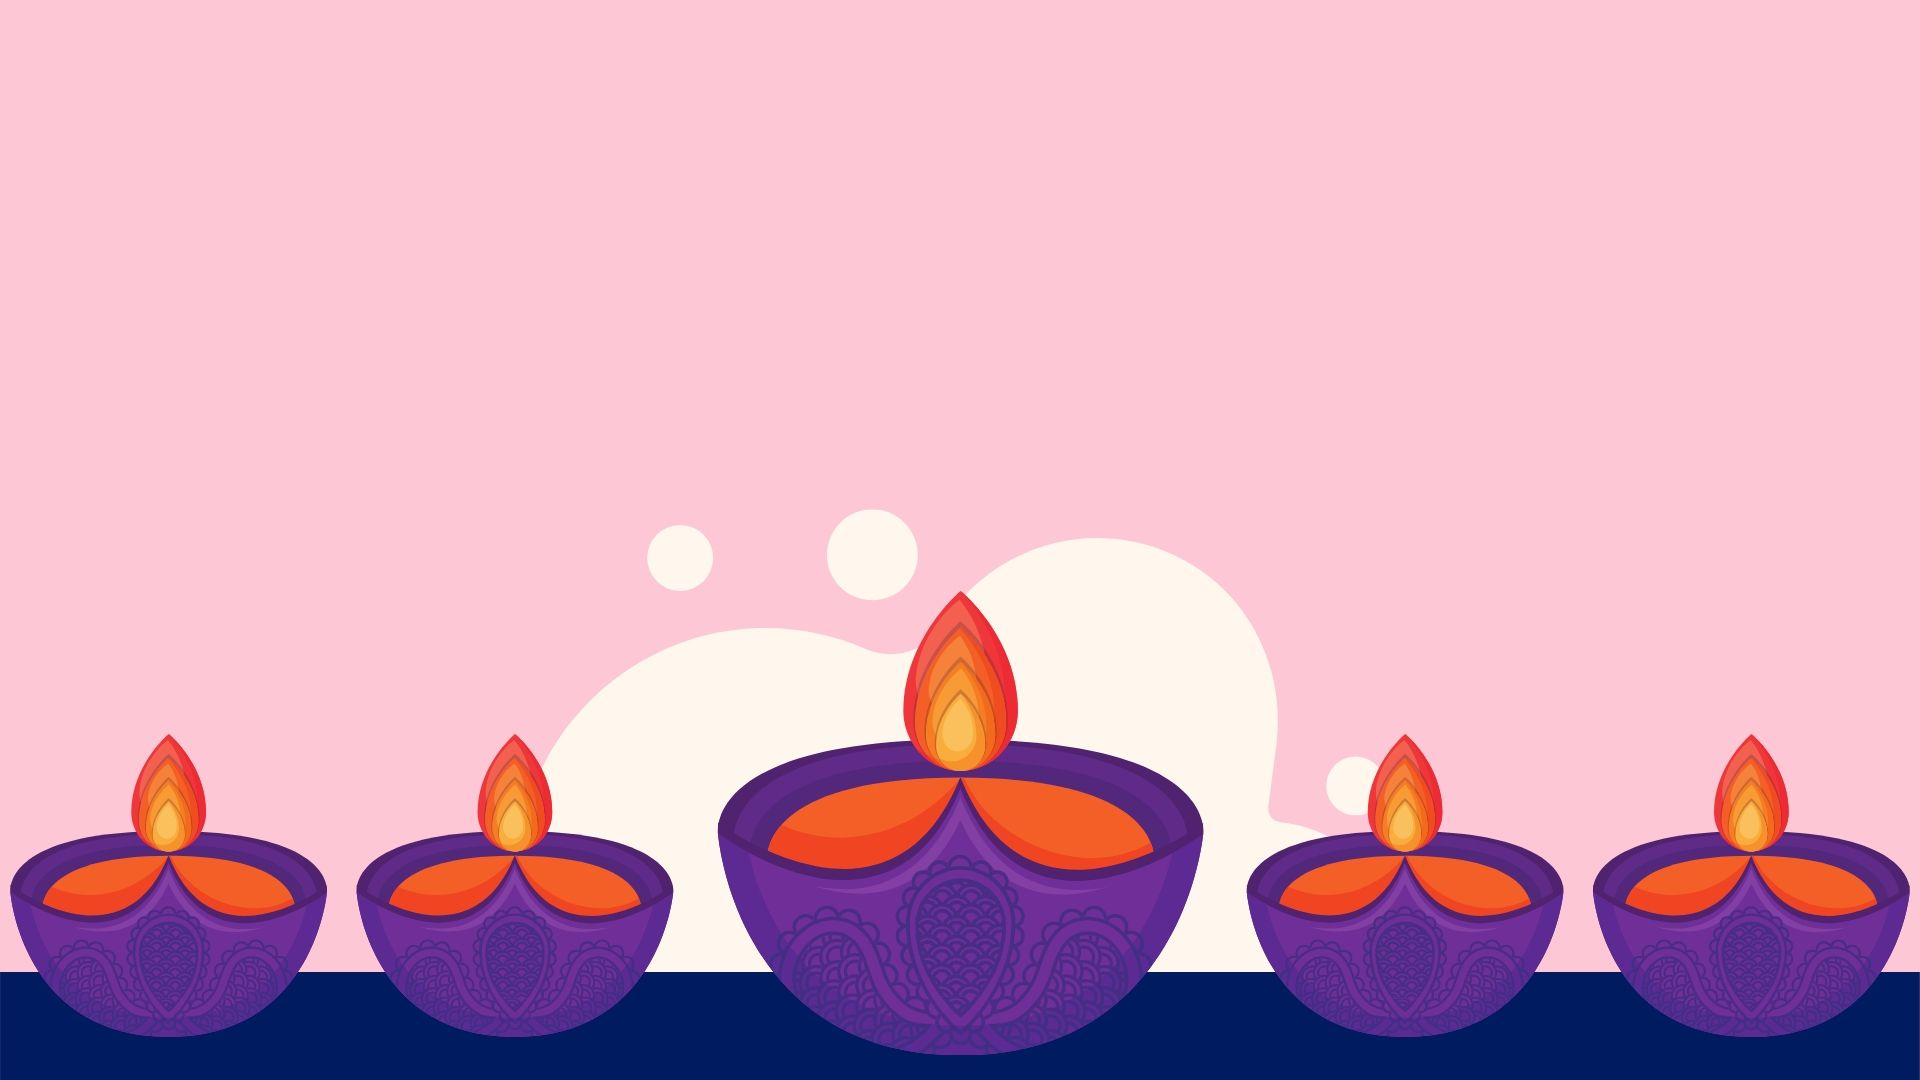 happy-diwali-background-Images-2020